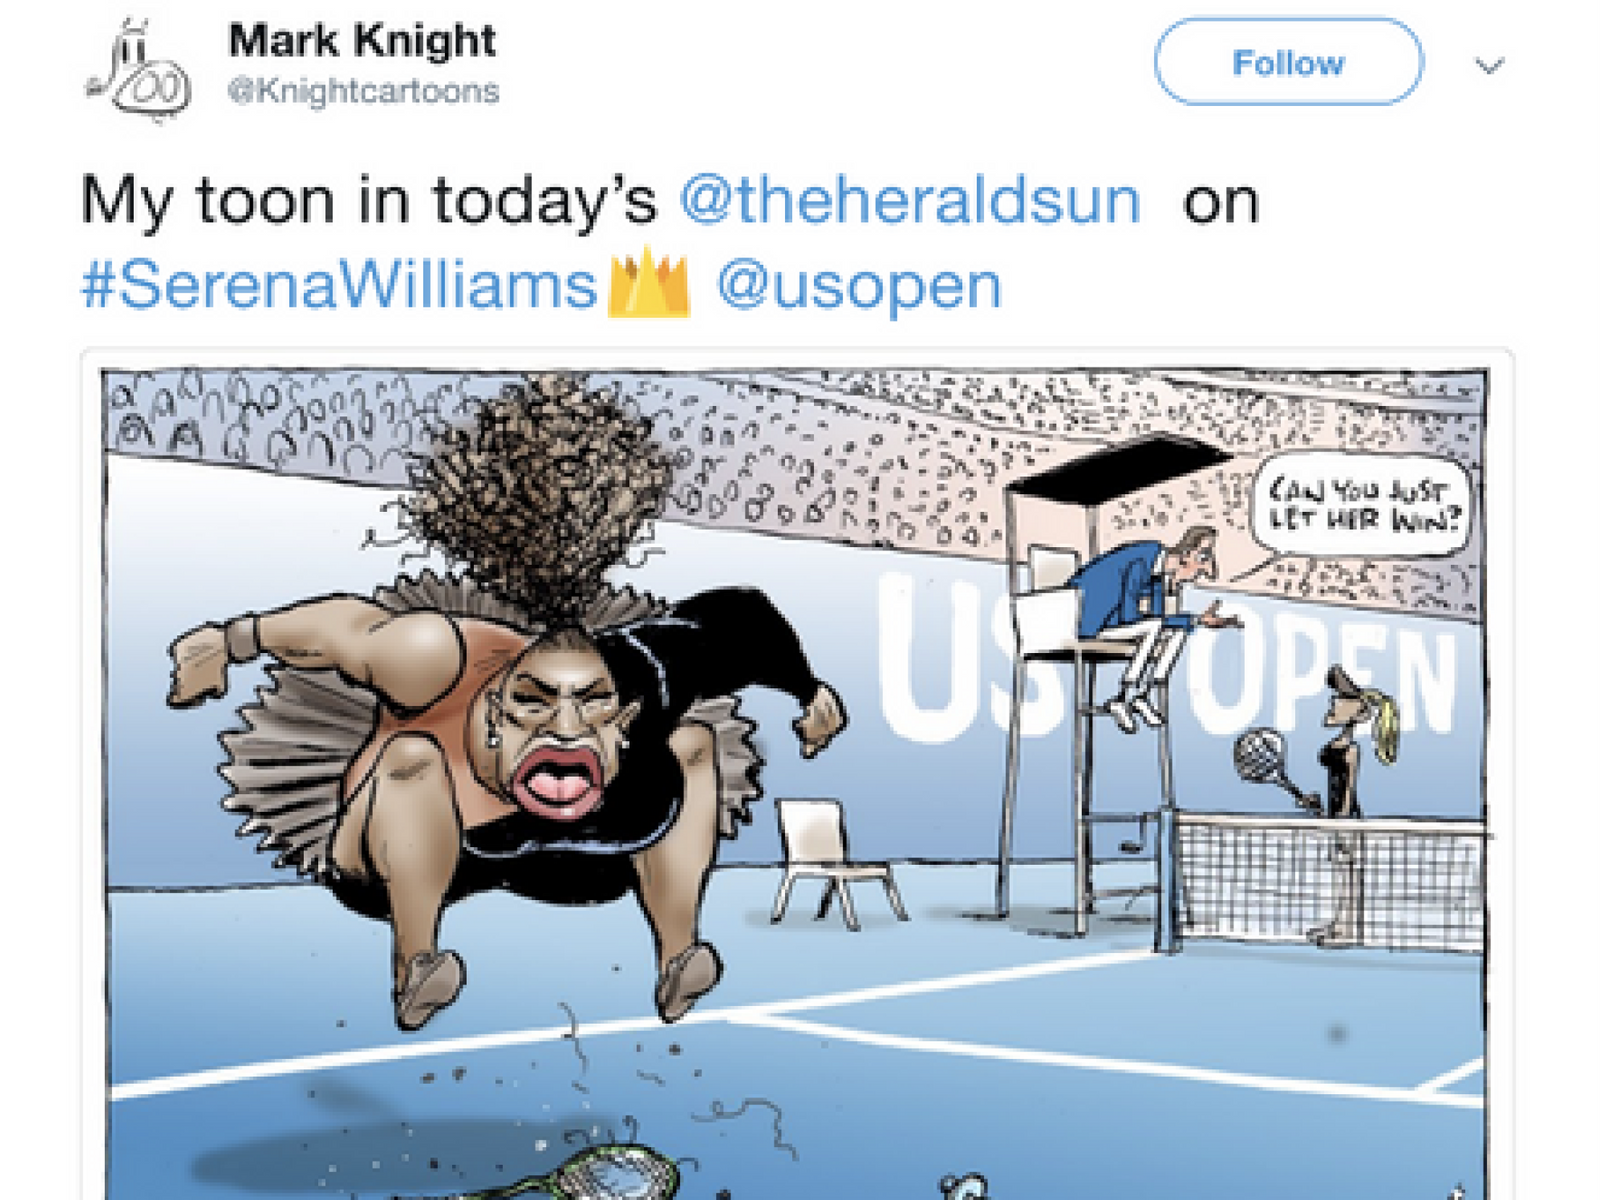 Paper defends Serena Williams cartoon by republishing it on the